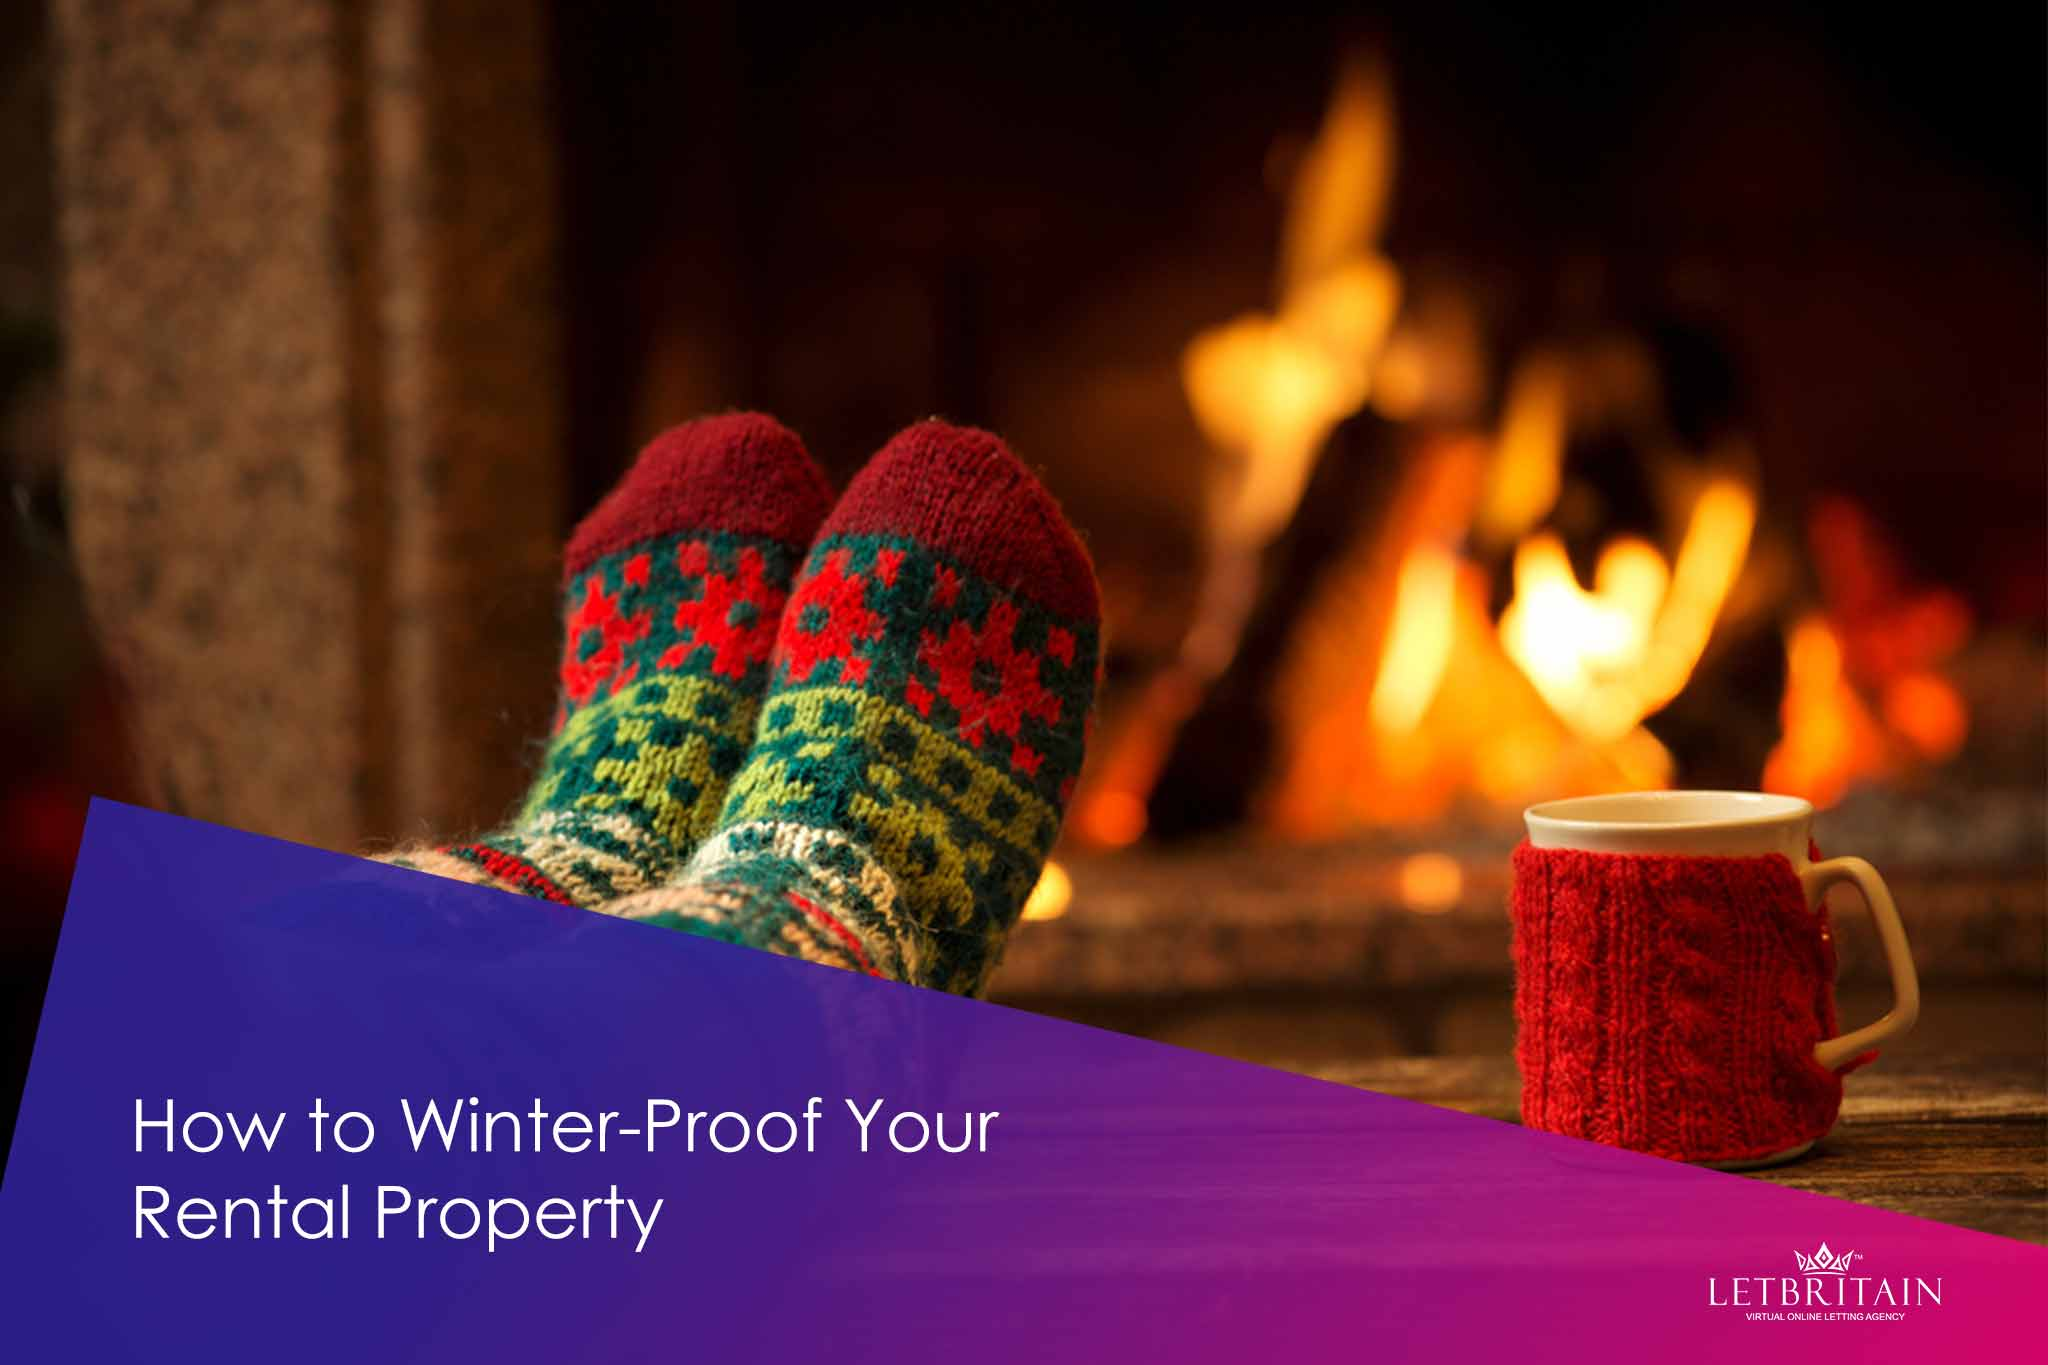 How To Winter-proof Your Rental Property